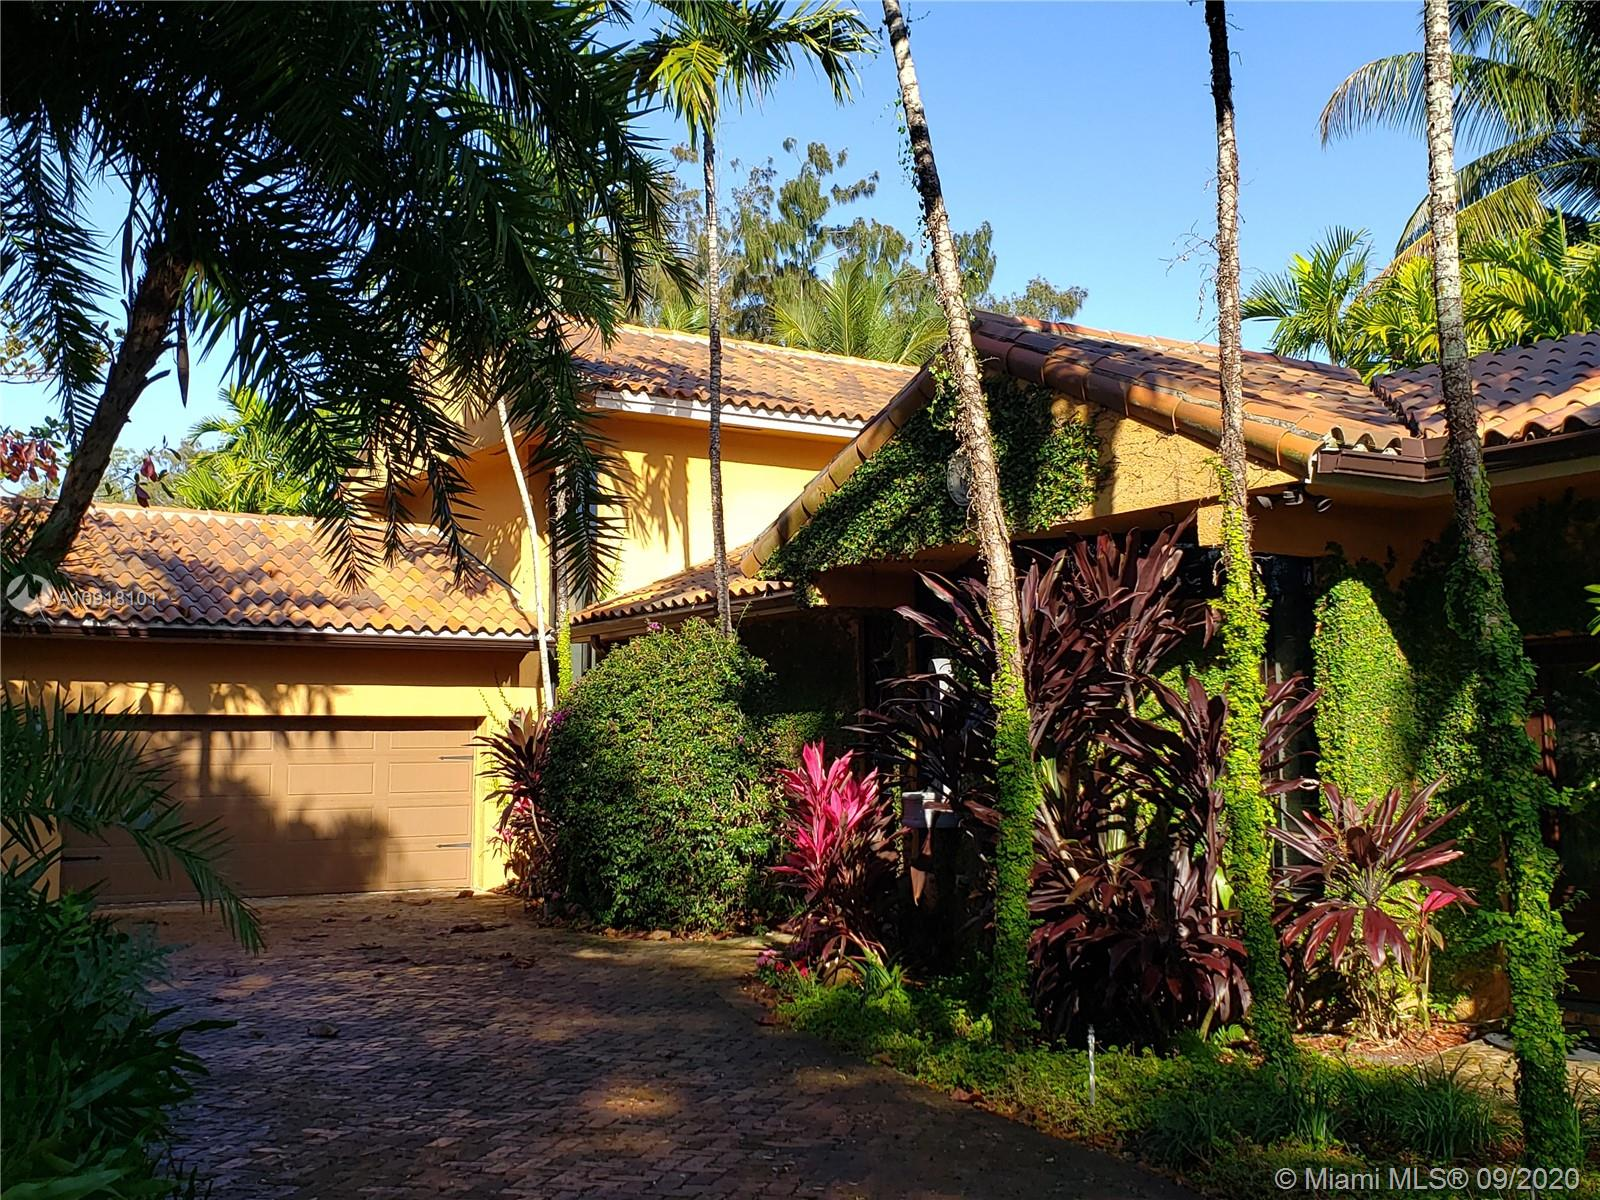 Excellent investment opportunity!   This home is Lakefront w/water views from almost every room! The main house offers three bedrooms- office can become a fourth bedroom, three full baths, four garage spaces. Large one bed/two bath attached GUEST HOUSE/IN LAW independent from the main home. Huge family room - floor to ceiling windows. The central kitchen has a gas stove & high-end appliances, and there is a second kitchen in the guest house.  Impact windows & garage doors. Private master suite entire second floor, renovated bathroom, personal terrace w/direct lake view. Lots of storage. Beautiful backyard large unusual circle shaped pool, fountain, dock & fixed gazebo overlooking the lake. Perfect home for entertaining! Superb location.   This home is rented until May 2021.  Make an offer